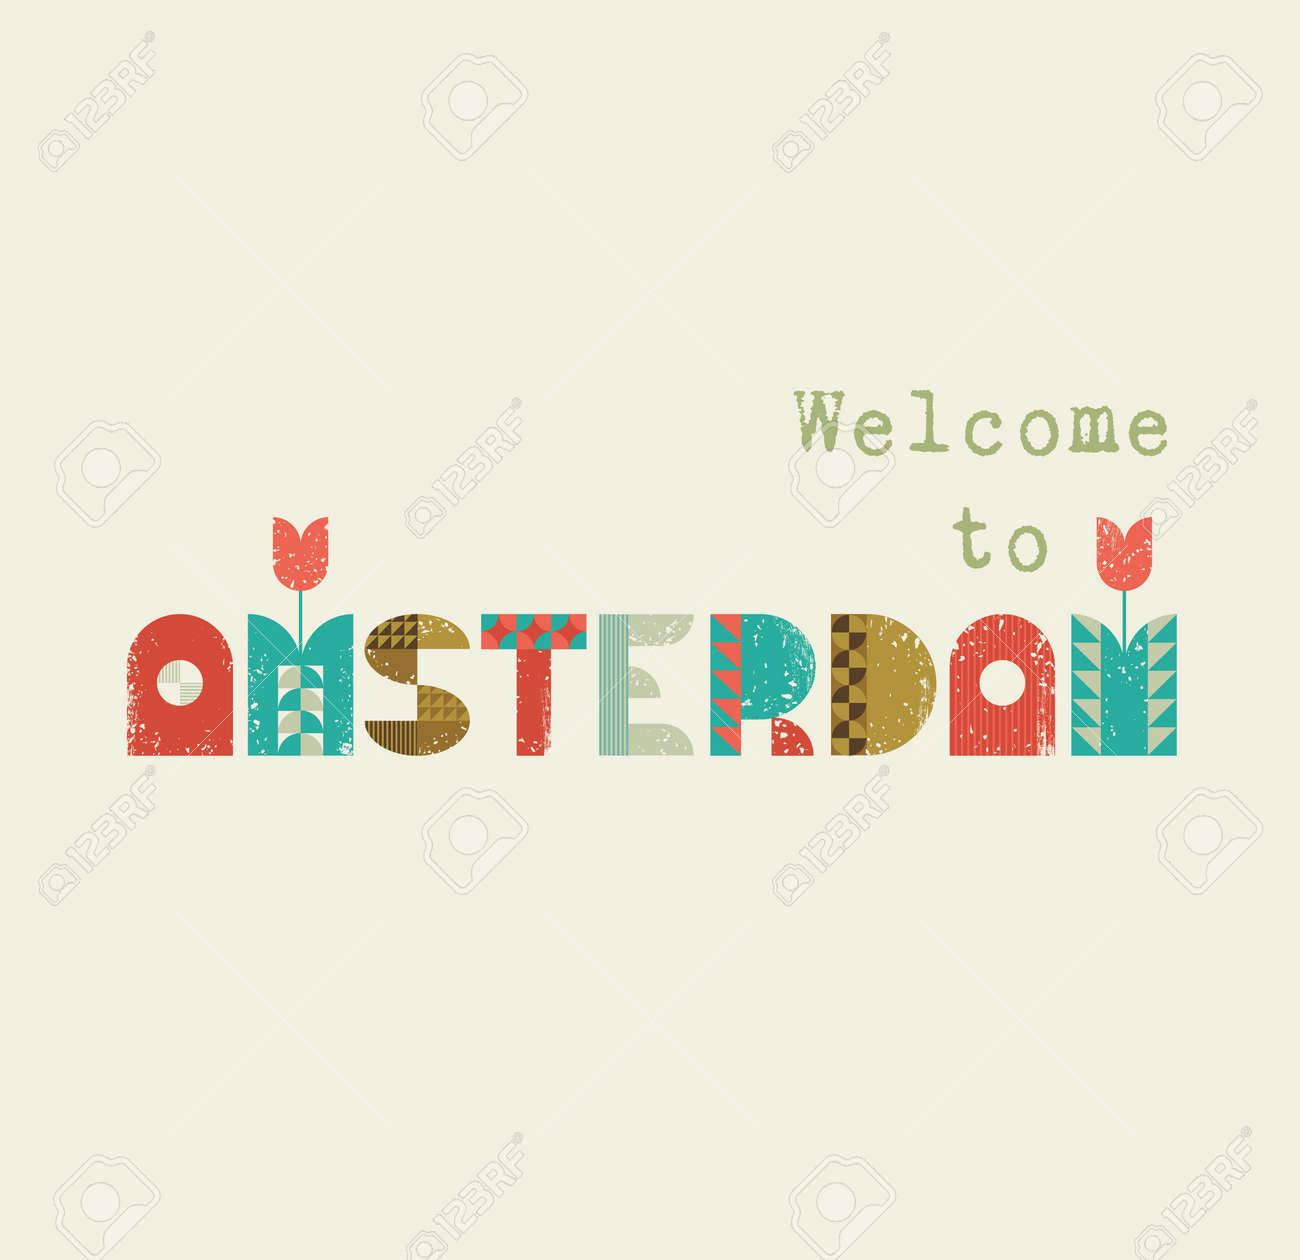 104 welcome to amsterdam stock illustrations cliparts and royalty vector greeting card with text welcome to amsterdam vintage lettering with symbols of holland tulips buycottarizona Gallery